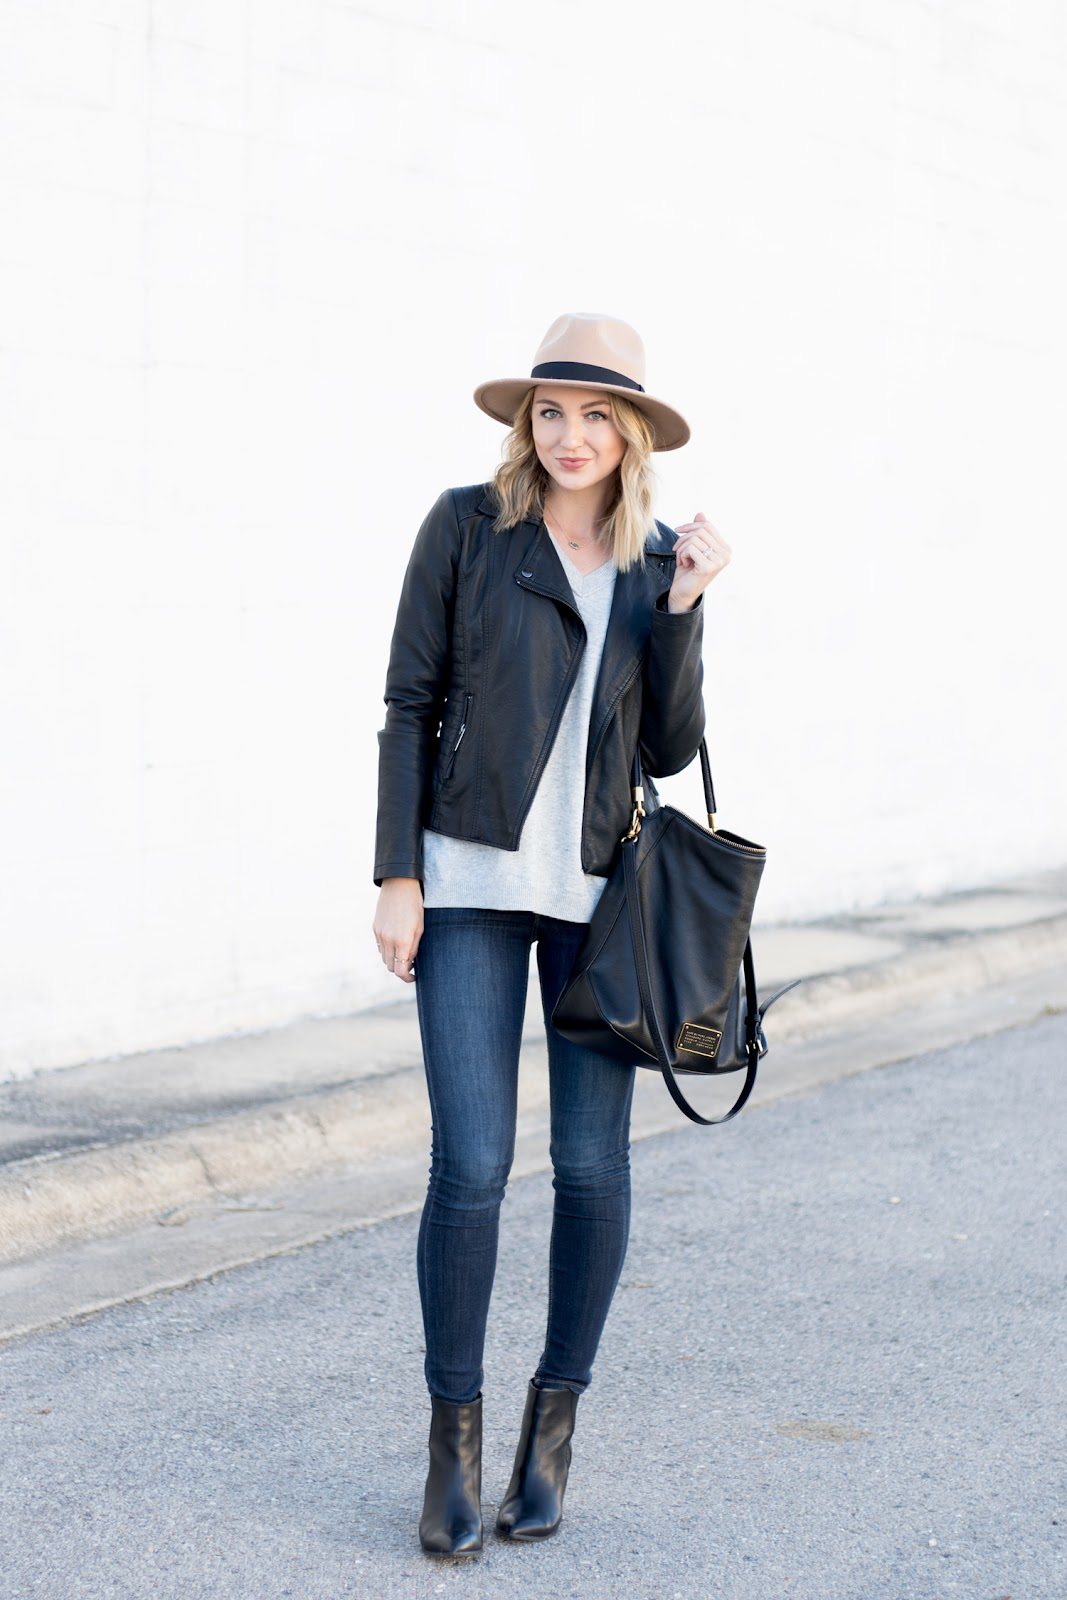 Black and gray outfit